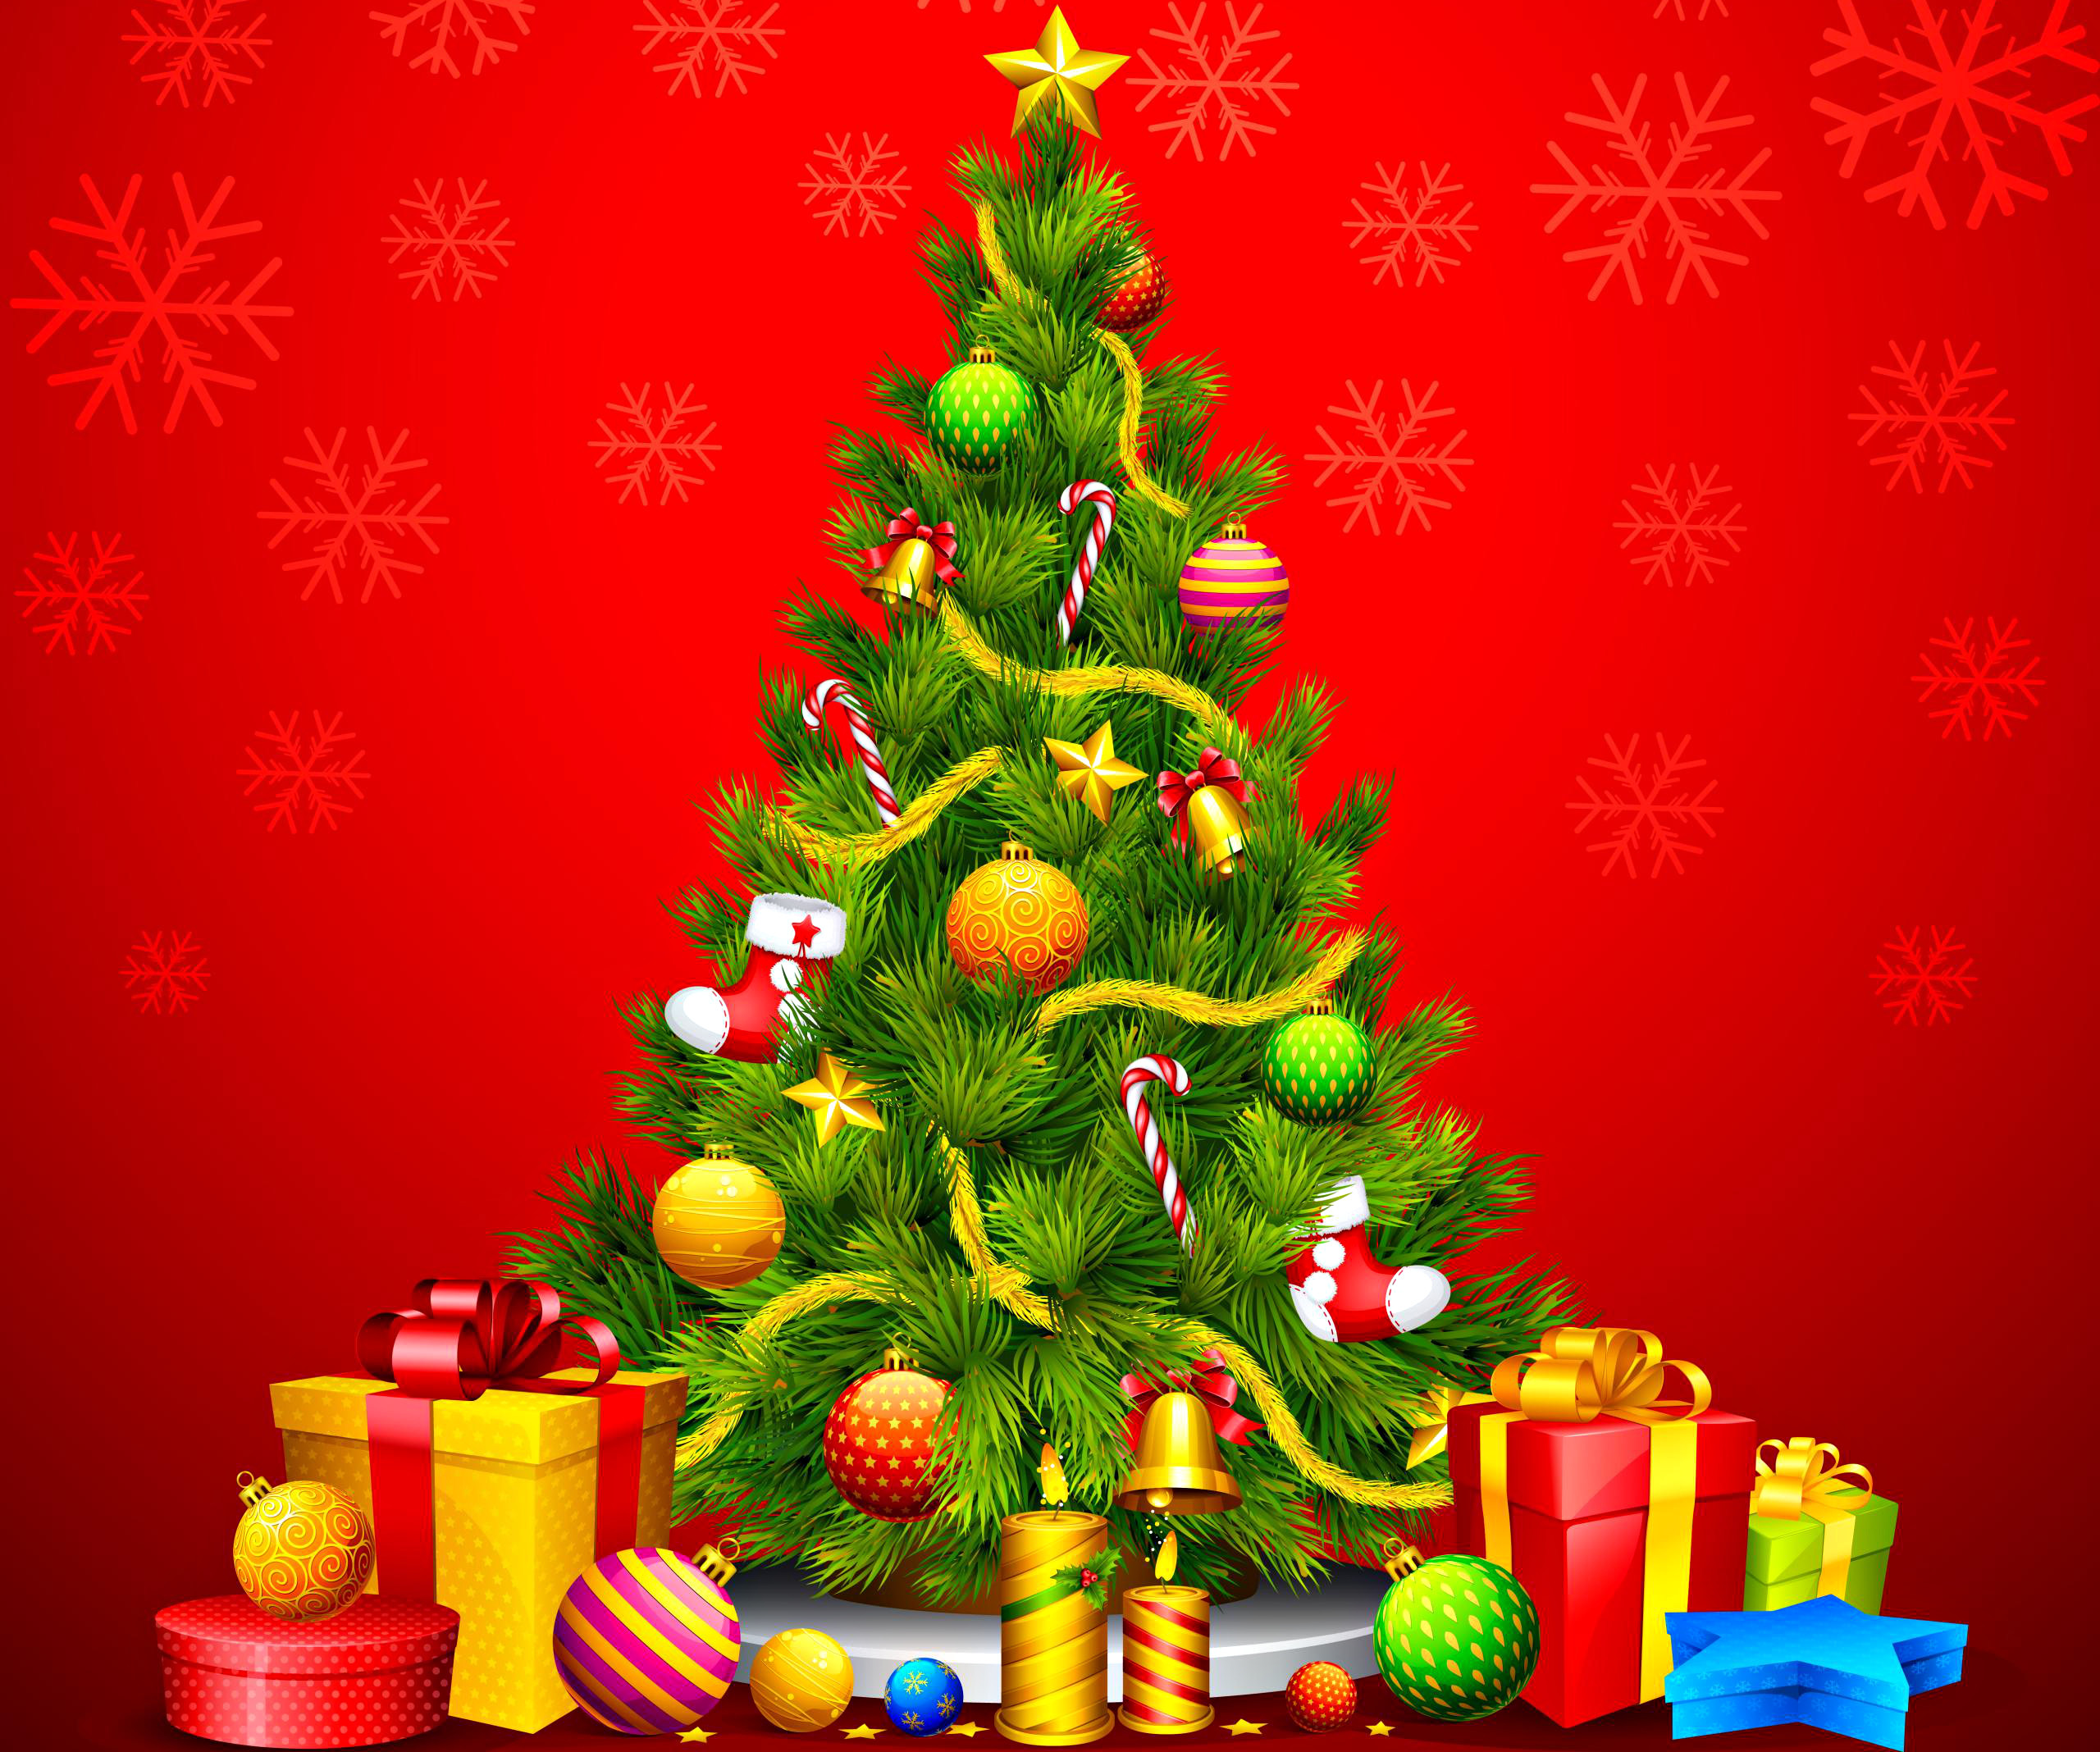 55 3d Animated Christmas Find professional christmas tree 3d models for any 3d design projects like virtual reality (vr), augmented reality (ar), games, 3d visualization or. 55 3d animated christmas